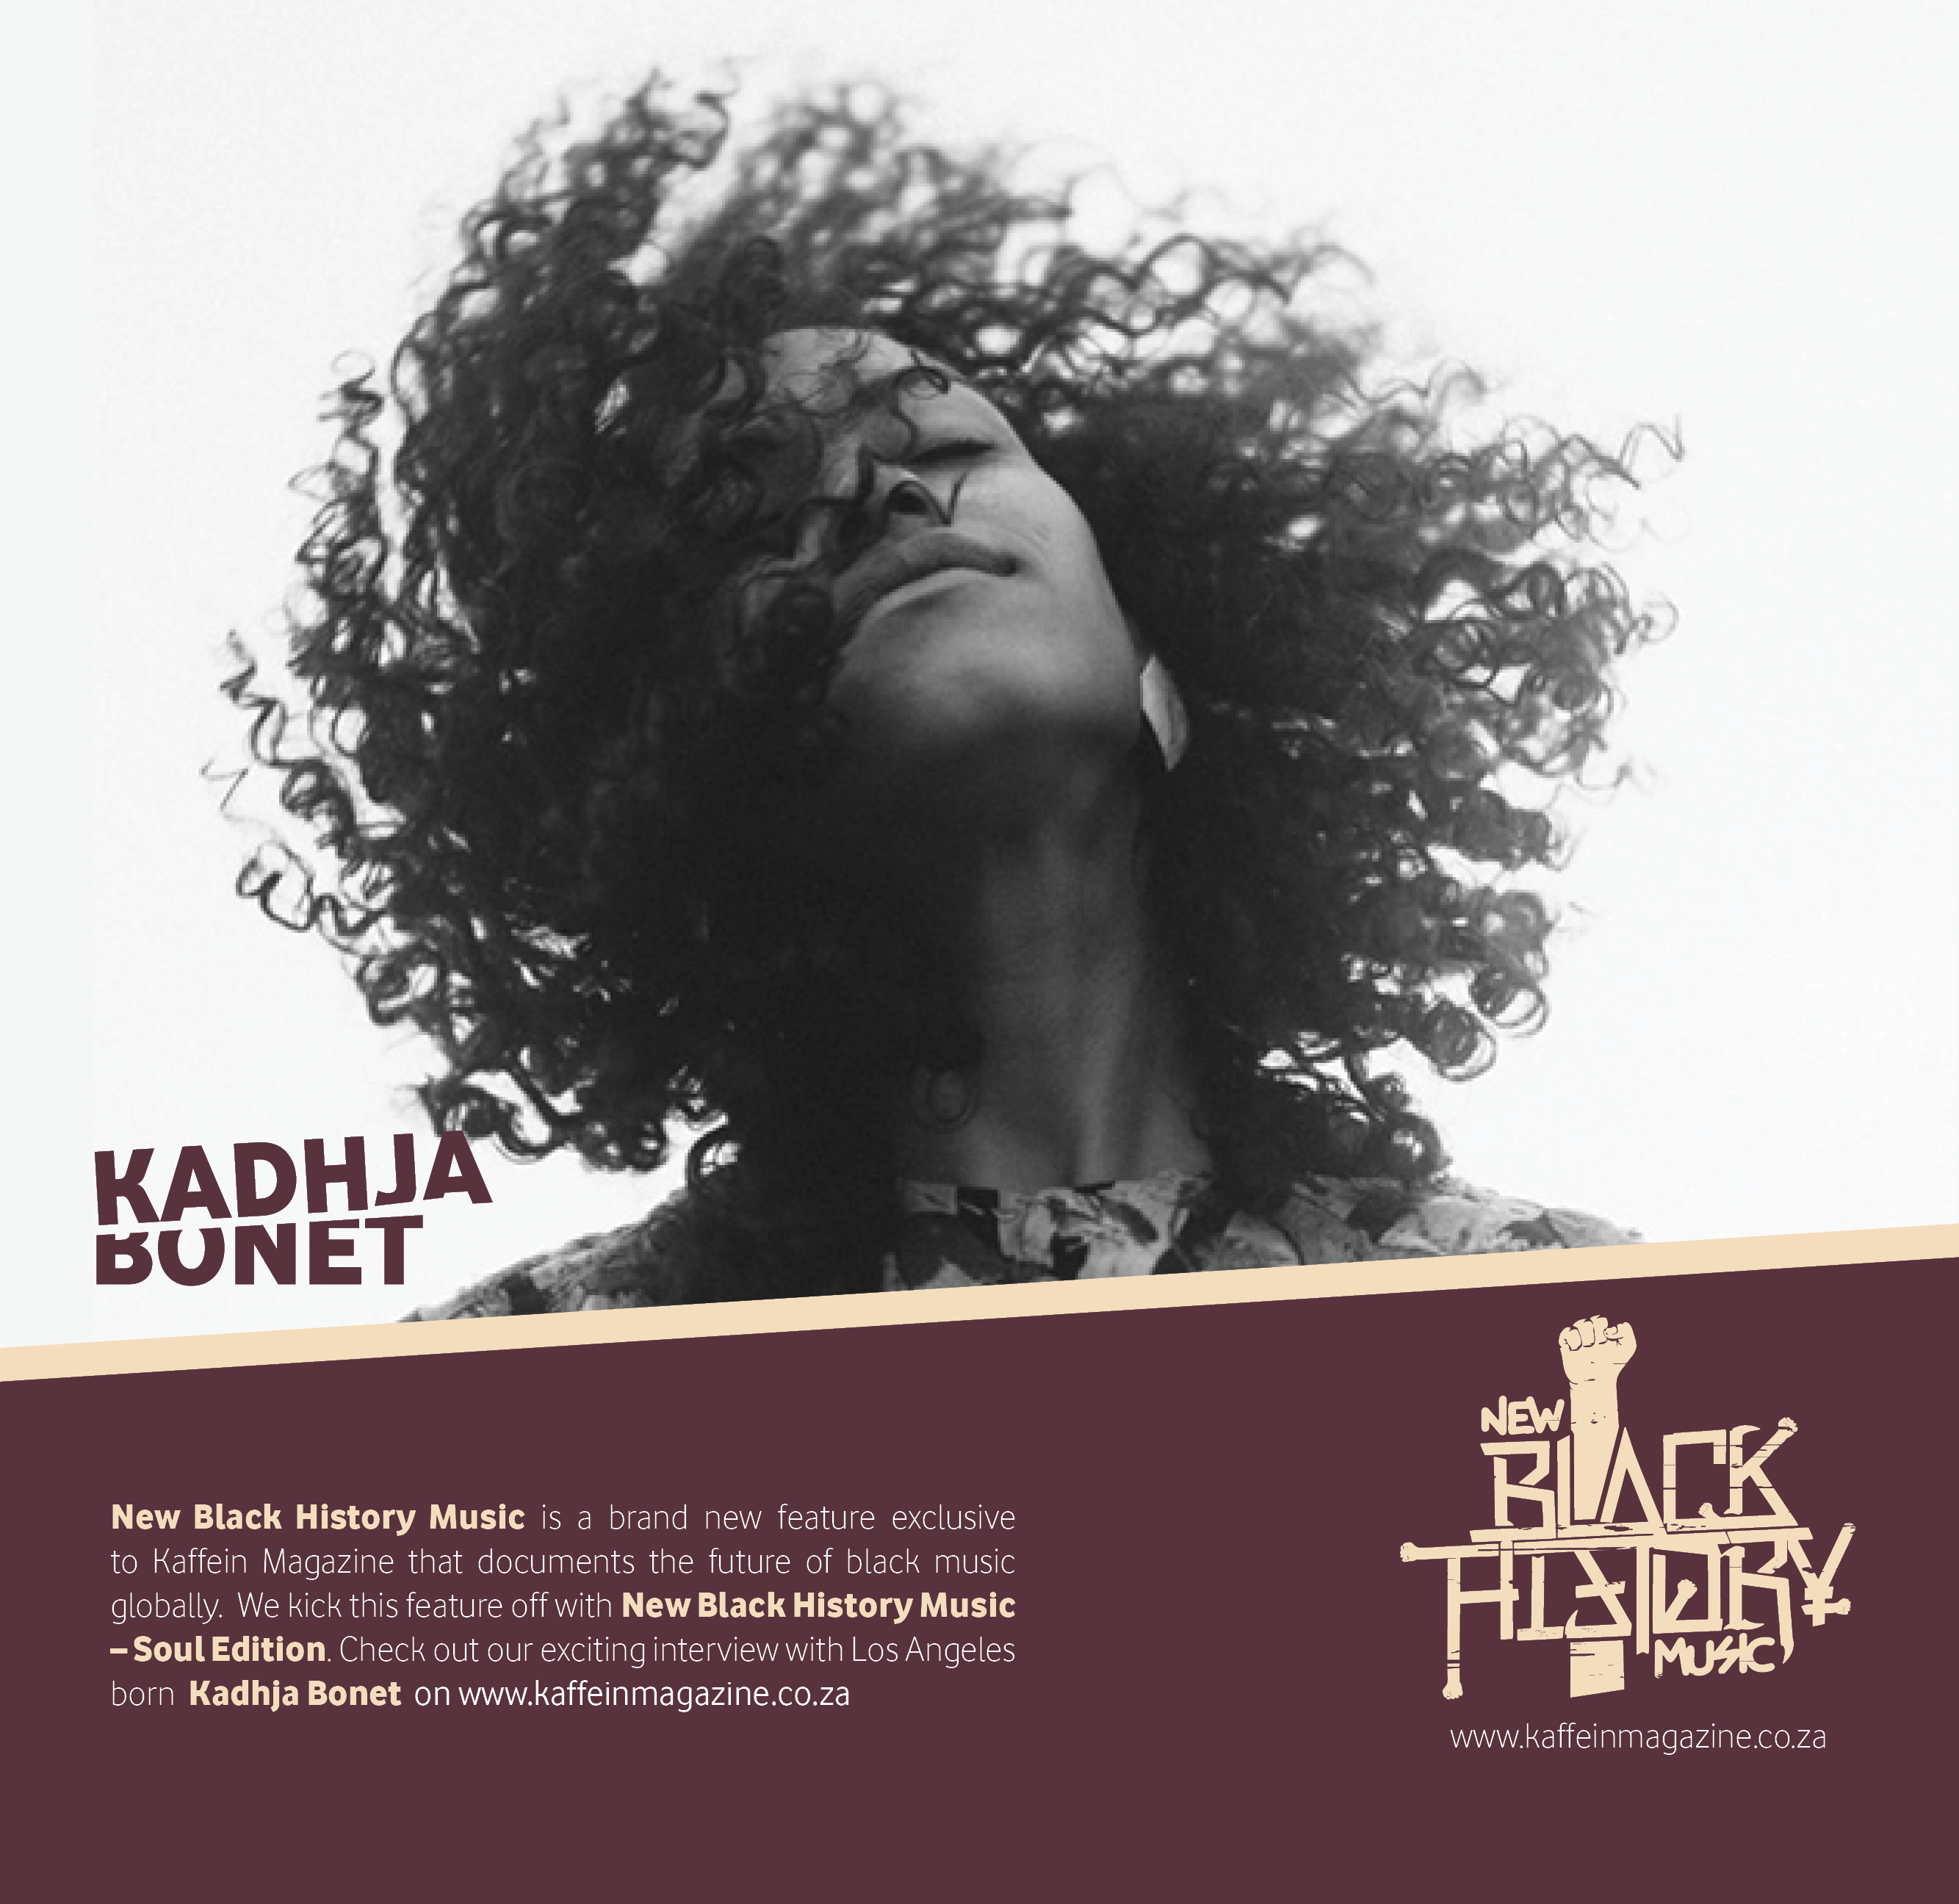 NBHM Kadhja Bonet interview